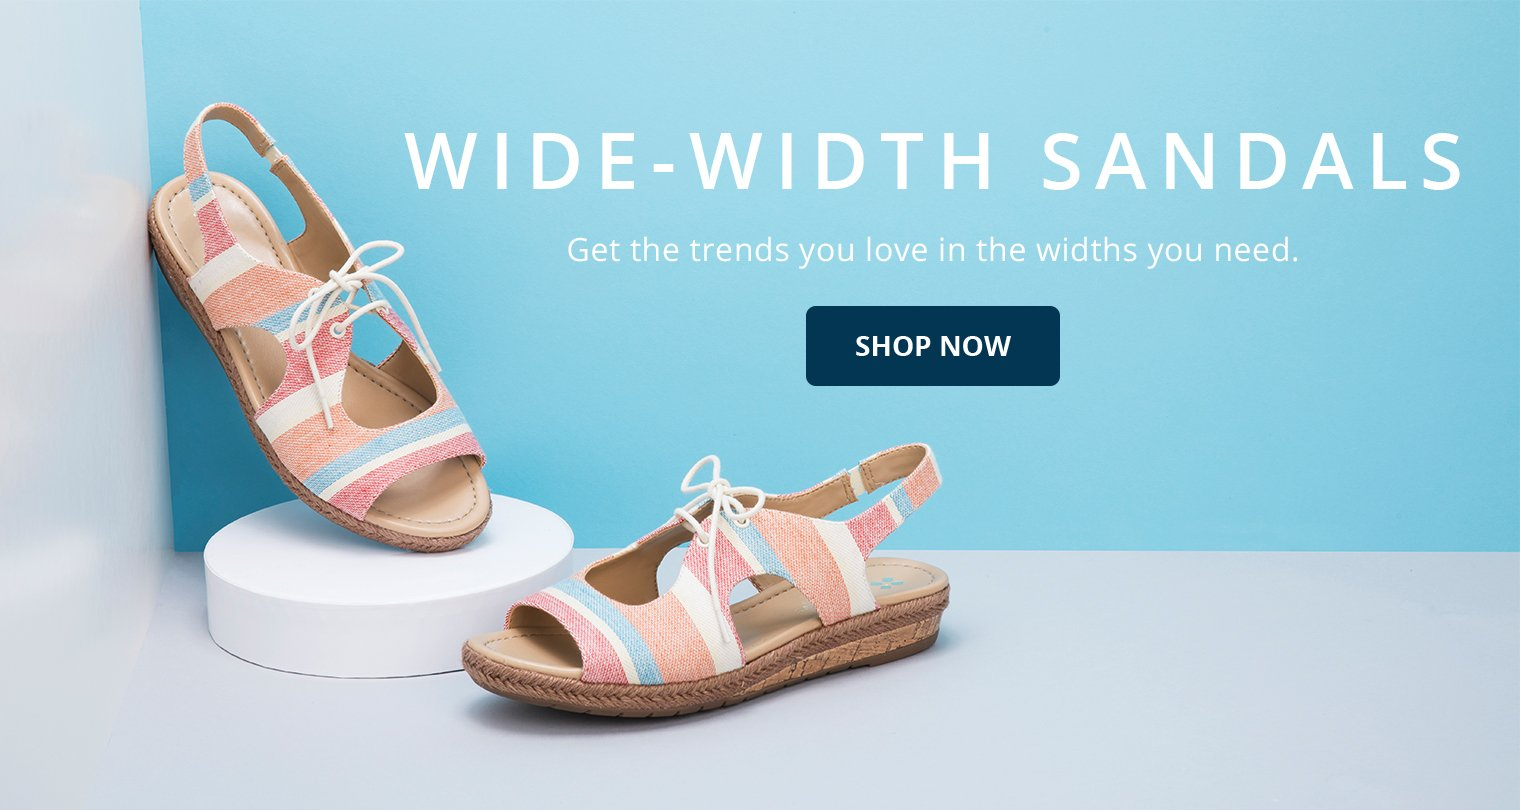 Wide-Width Sandals. Get the trends you love in the widths you need. Shop Now.